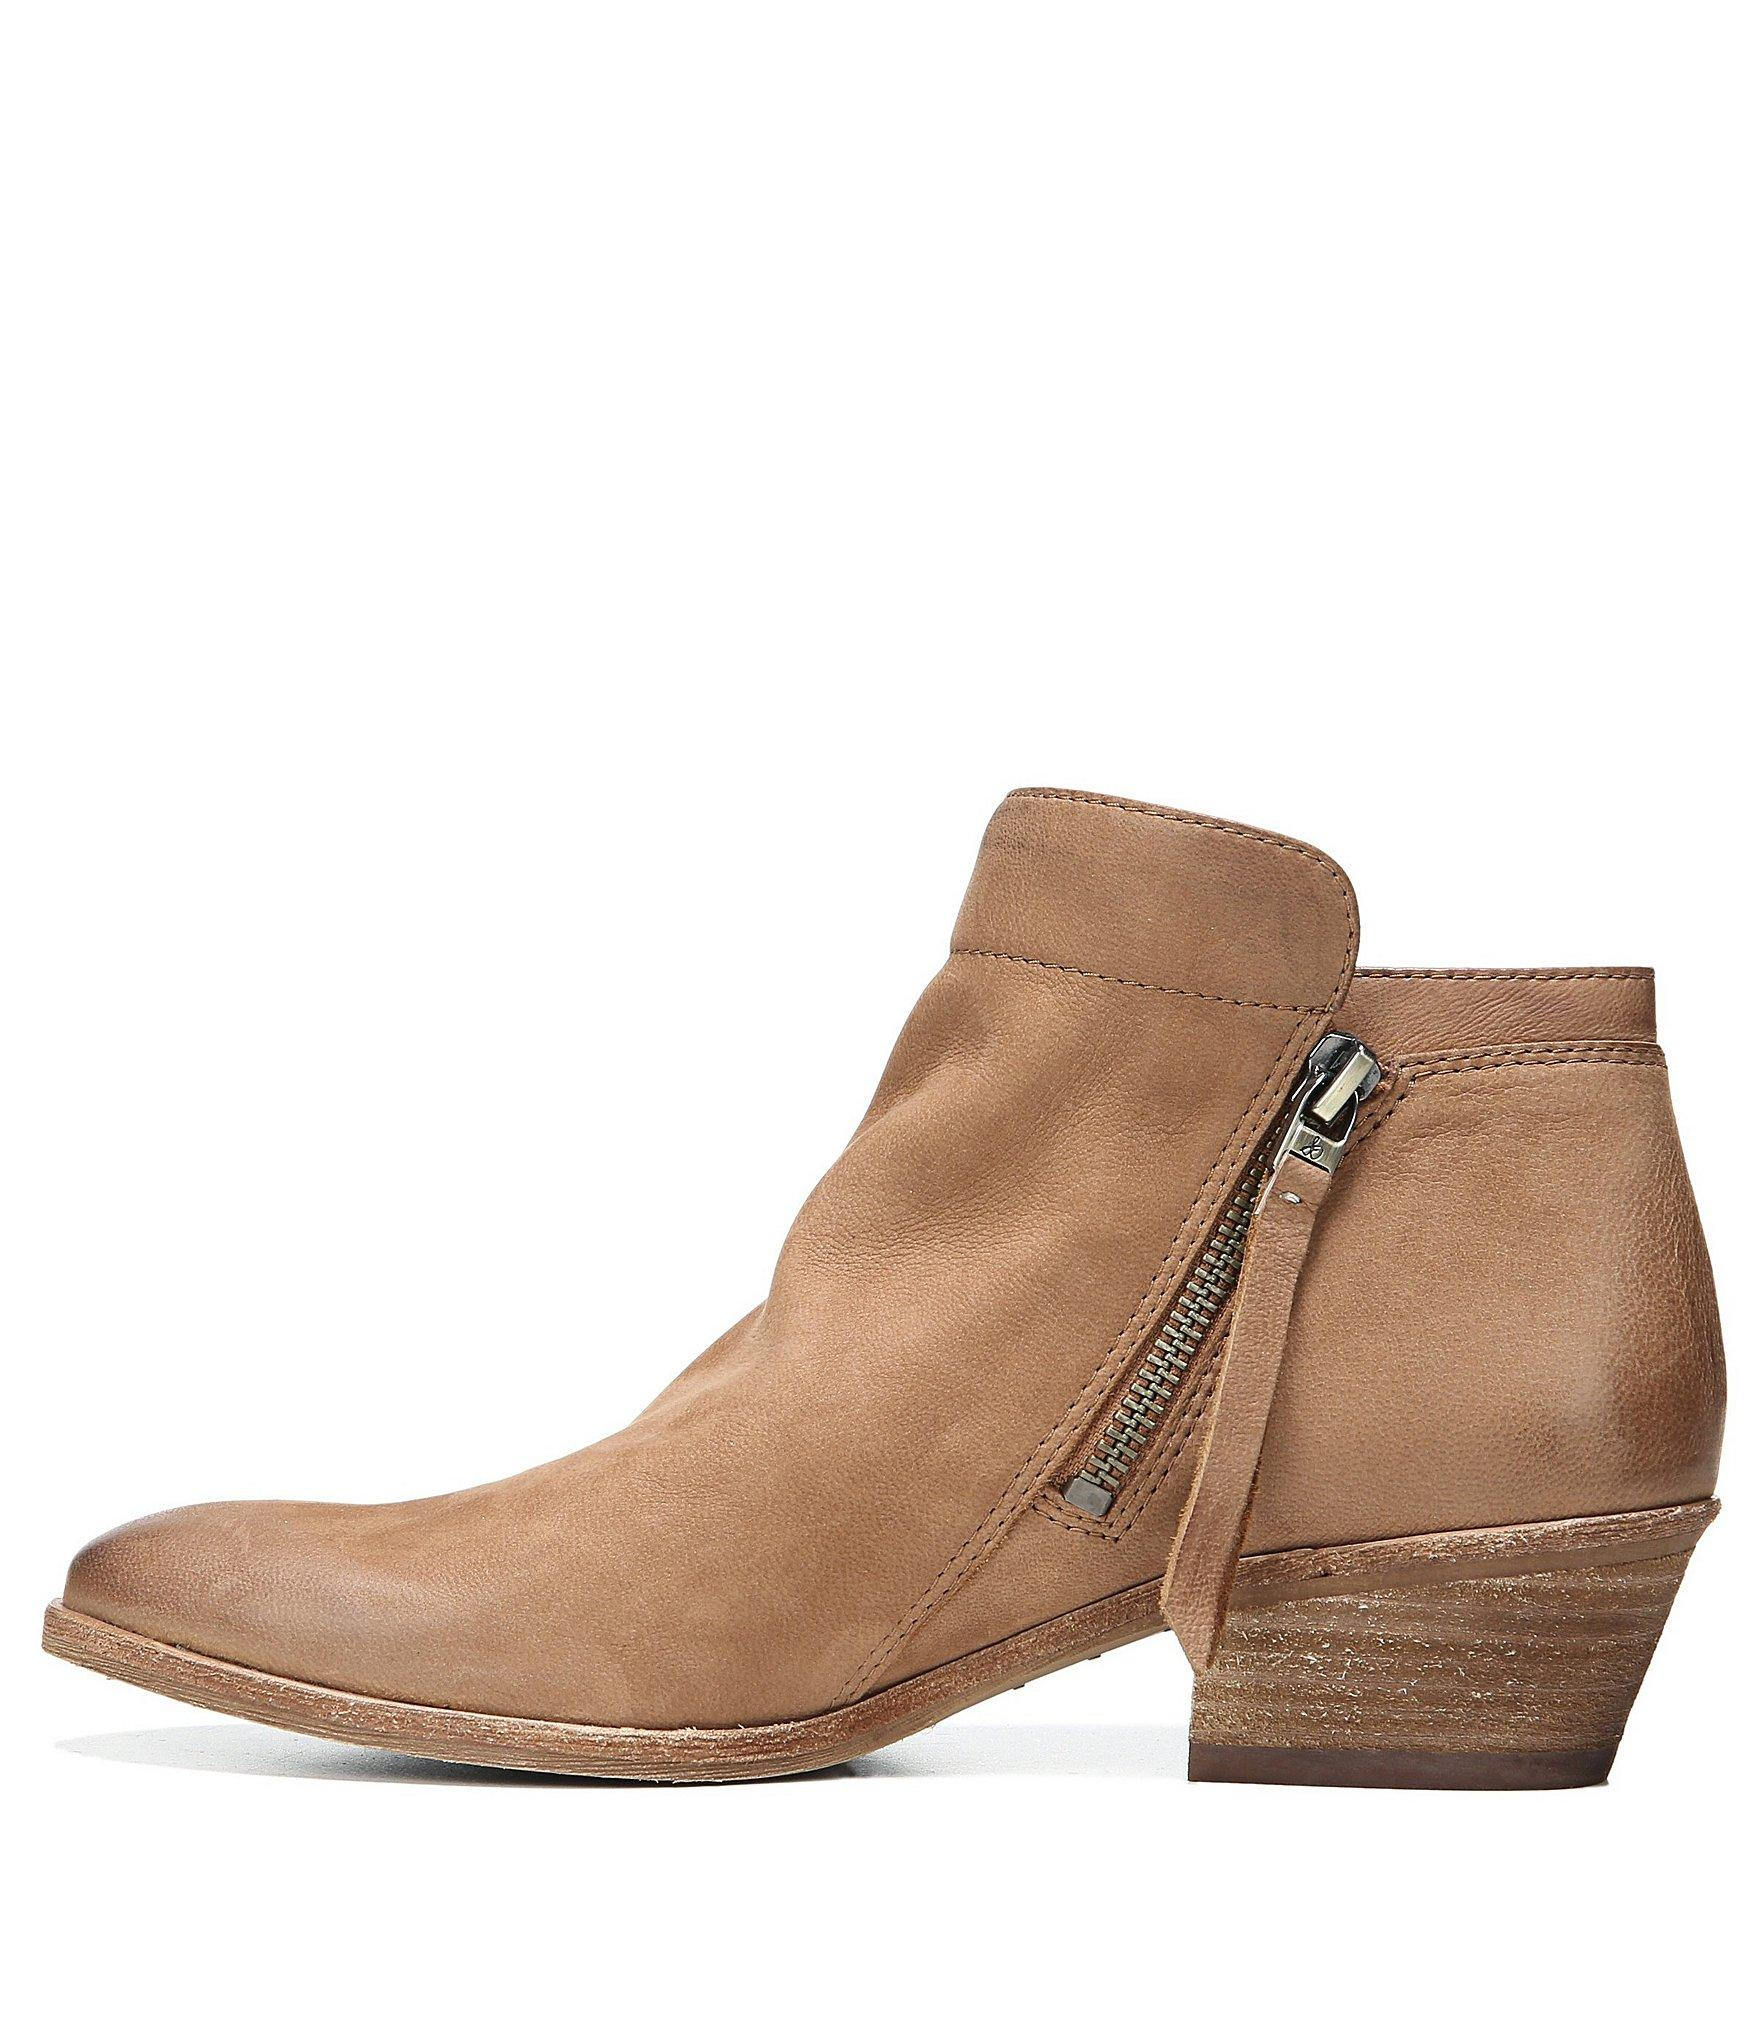 28130cdbac3512 Sam Edelman - Brown Packer Leather Block Heel Booties - Lyst. View  fullscreen